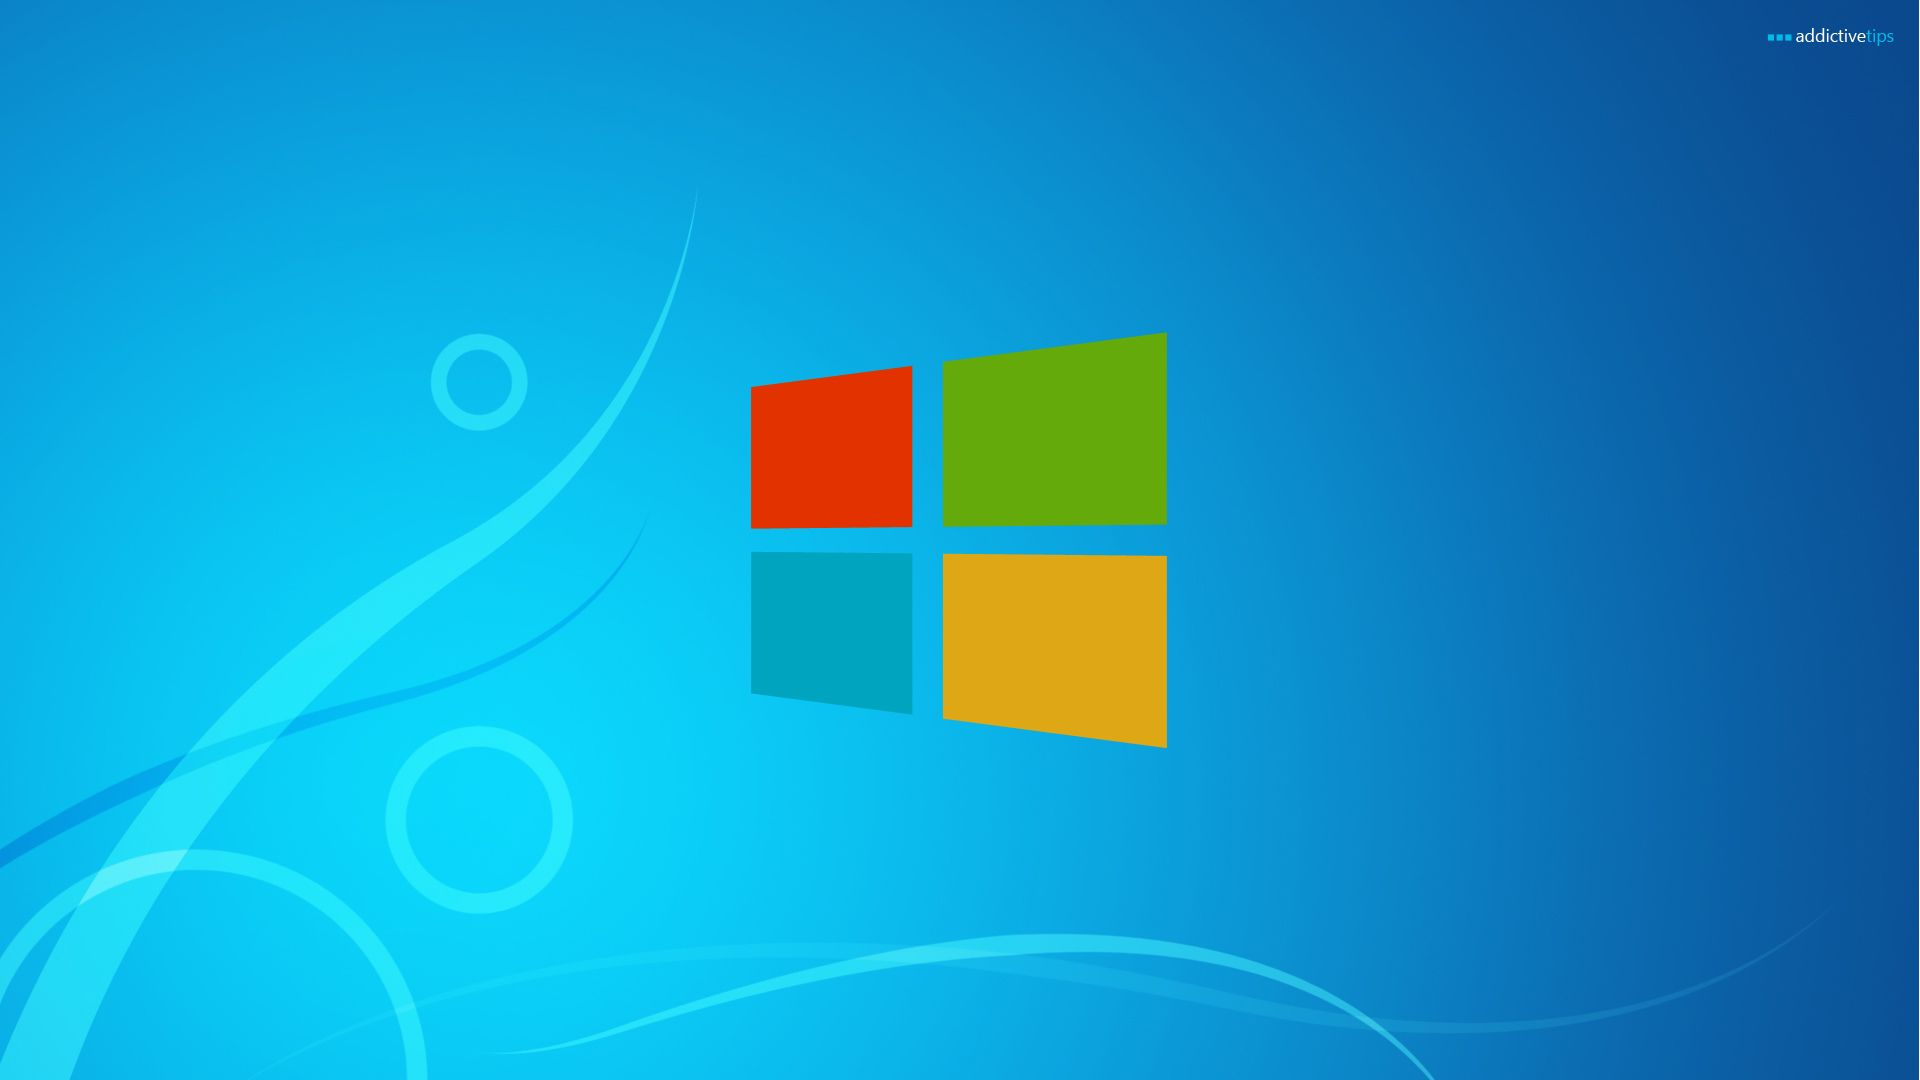 Windows 8 Wallpapers Top Free Windows 8 Backgrounds